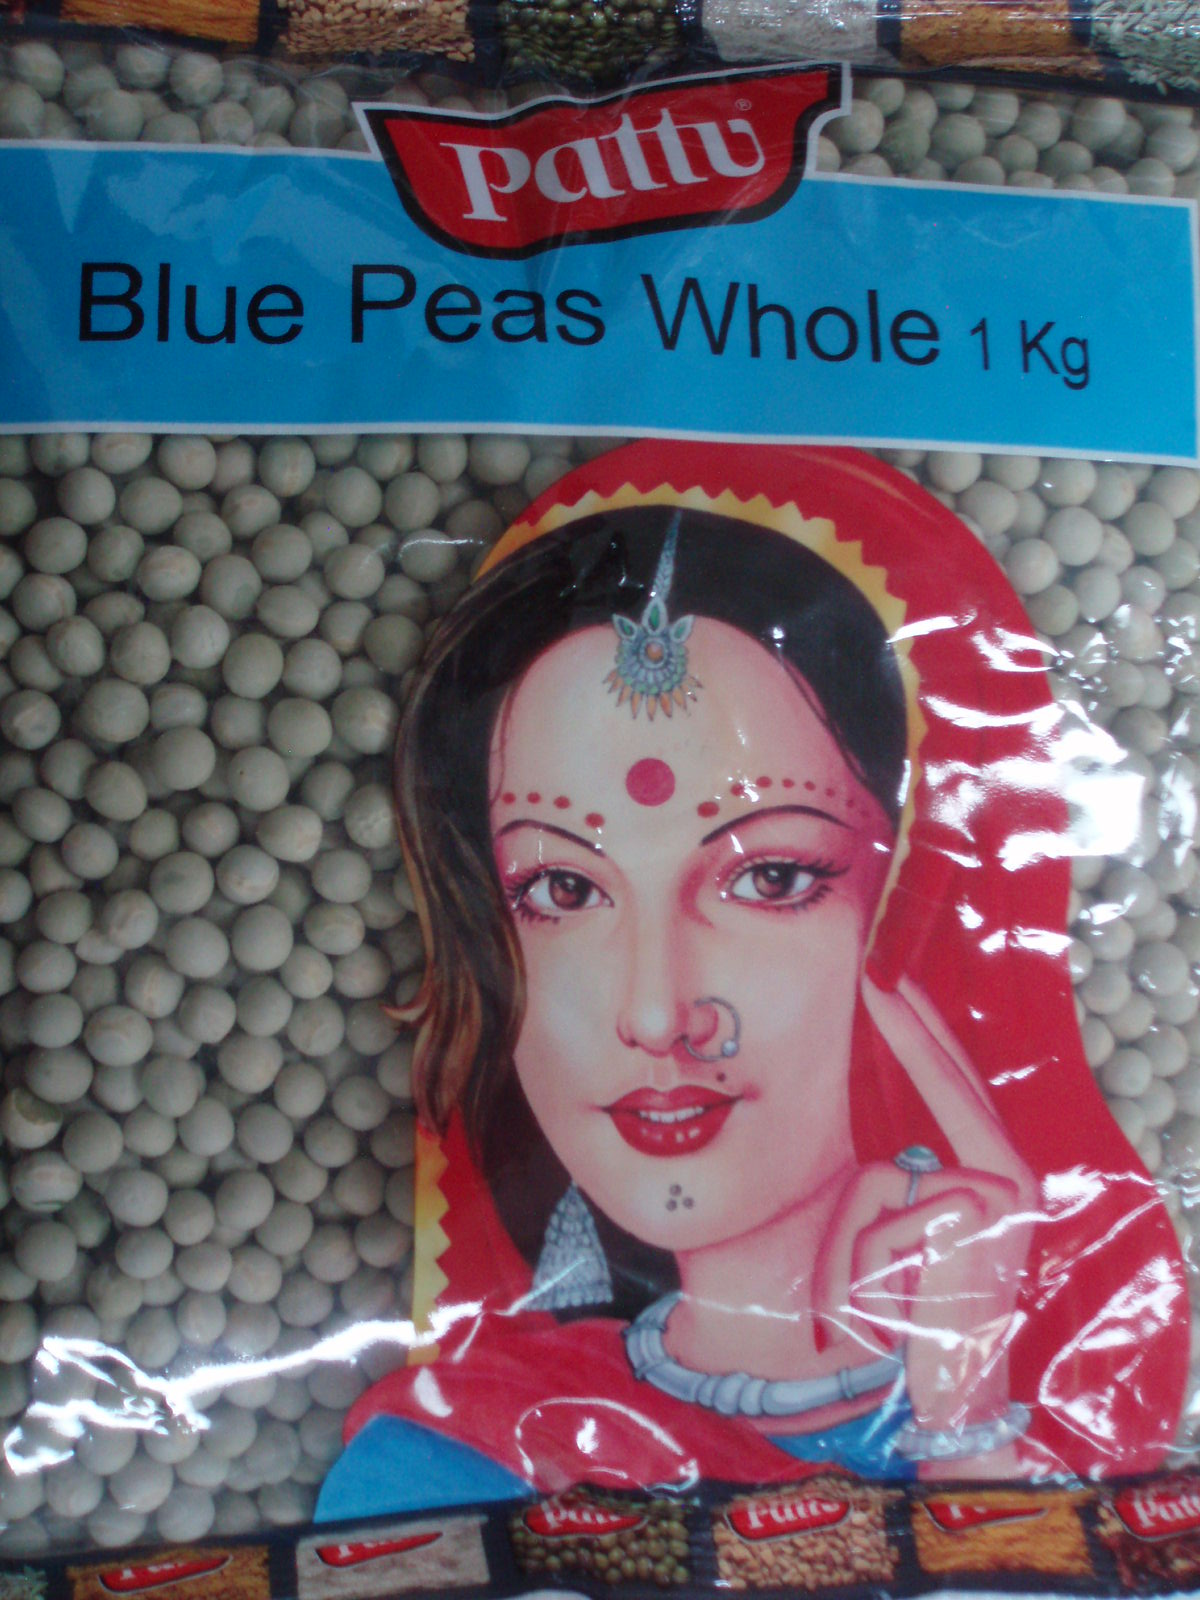 Blue Peas Whole-Pattu-1 Kg